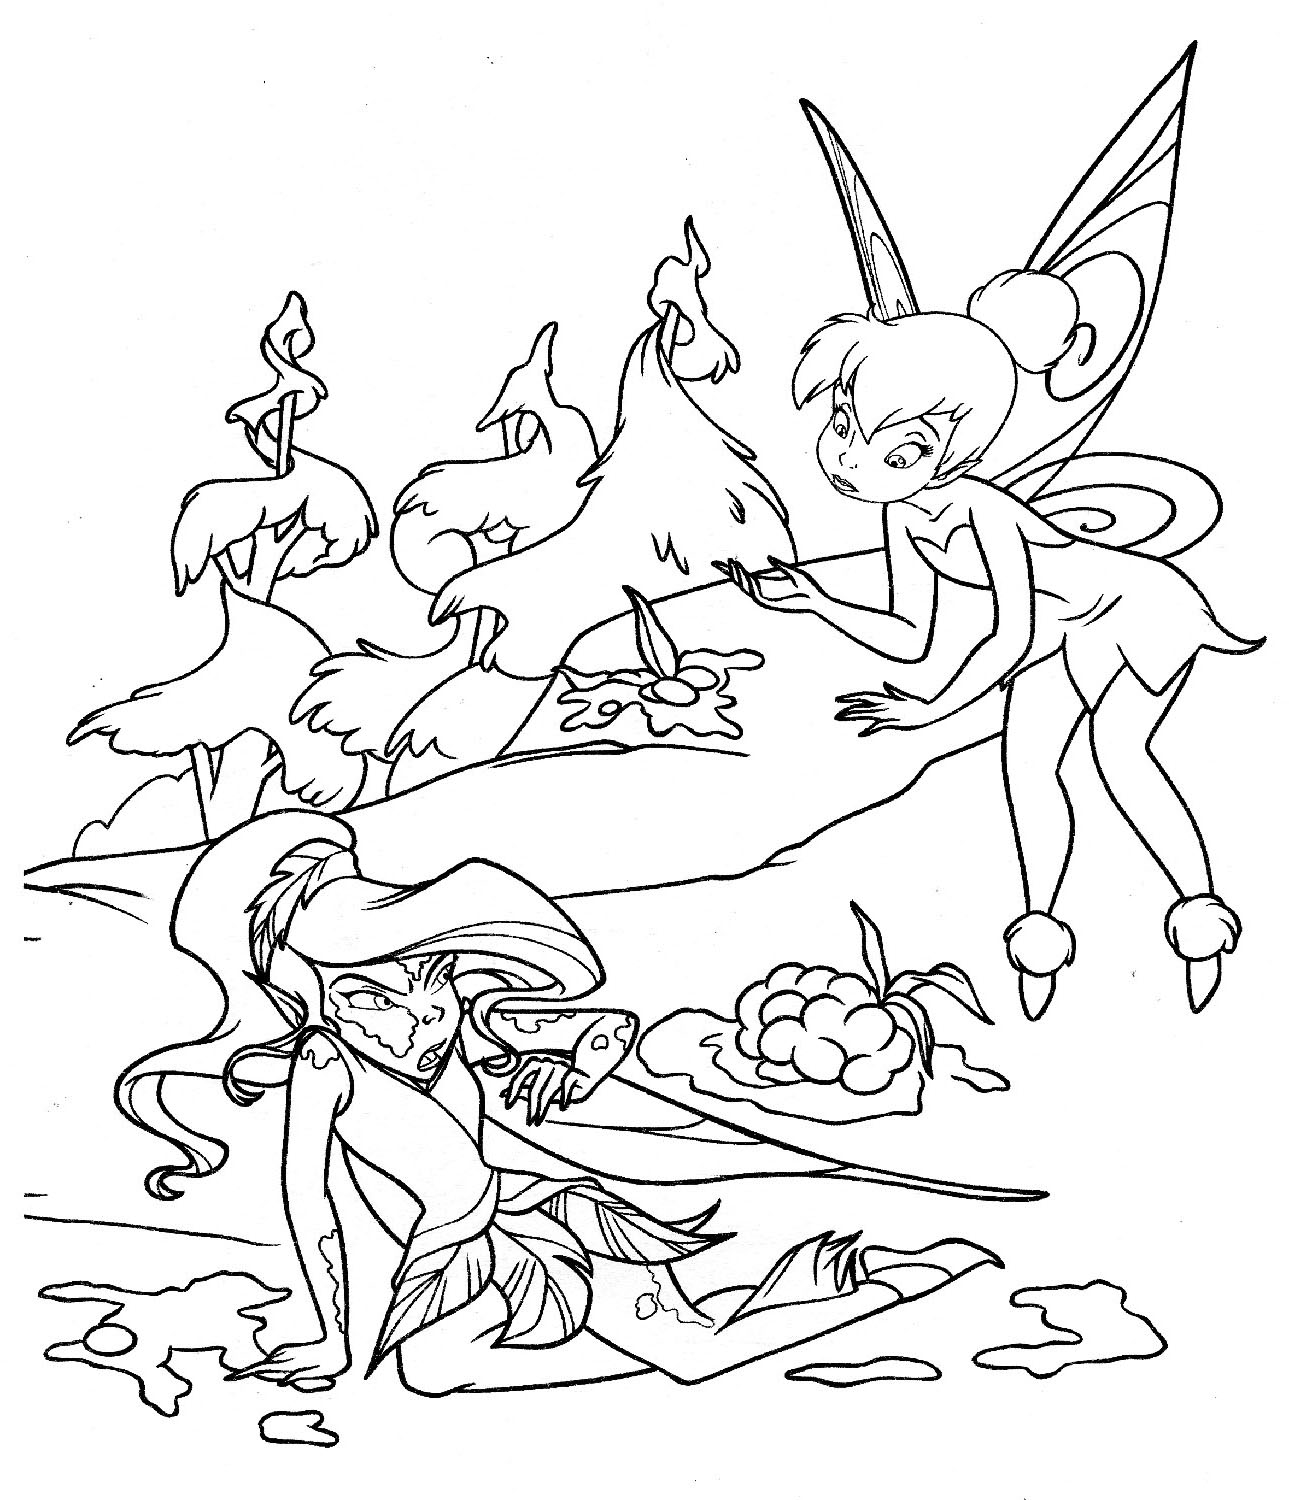 coloring pages tinker | Tinkerbell Coloring Pages - Helping Someone